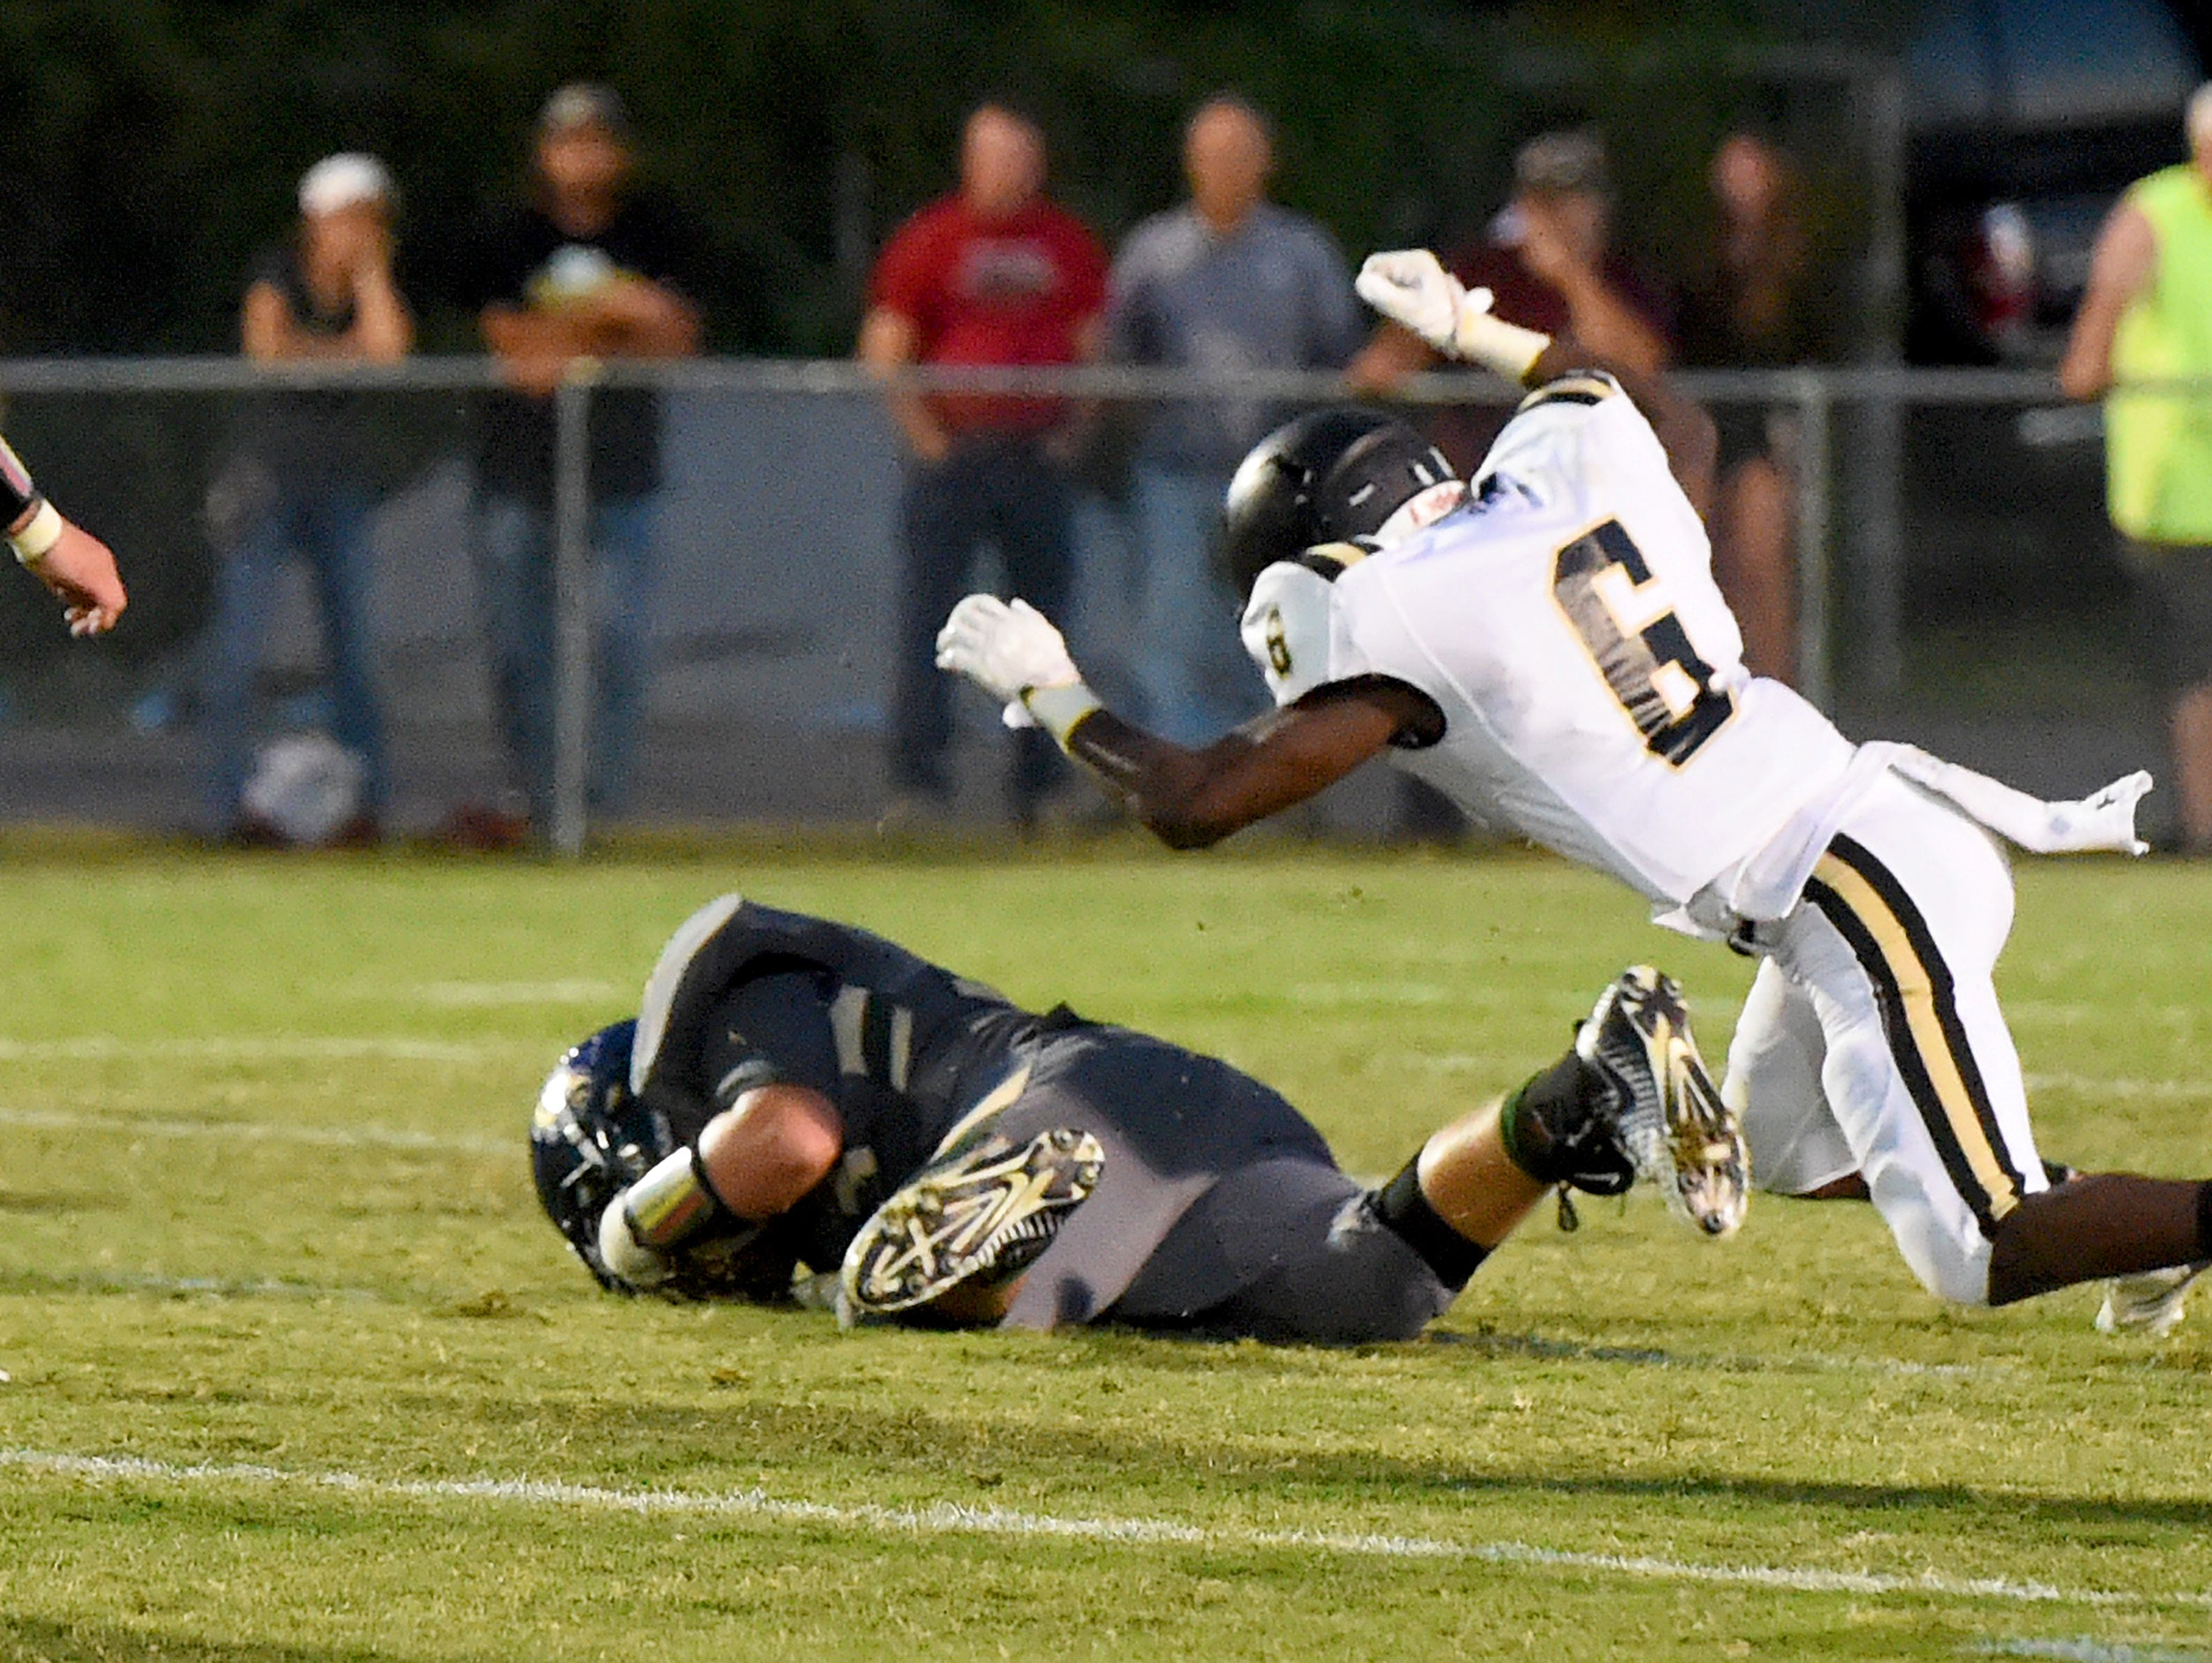 Wilson Memorial's Xavier Black dives onto a loose ball to recover a fumble for a game turnover as Buffalo Gap's Dylan Thompson dives after him during a football game played in Fishersville on Friday, Sept. 23, 2016.